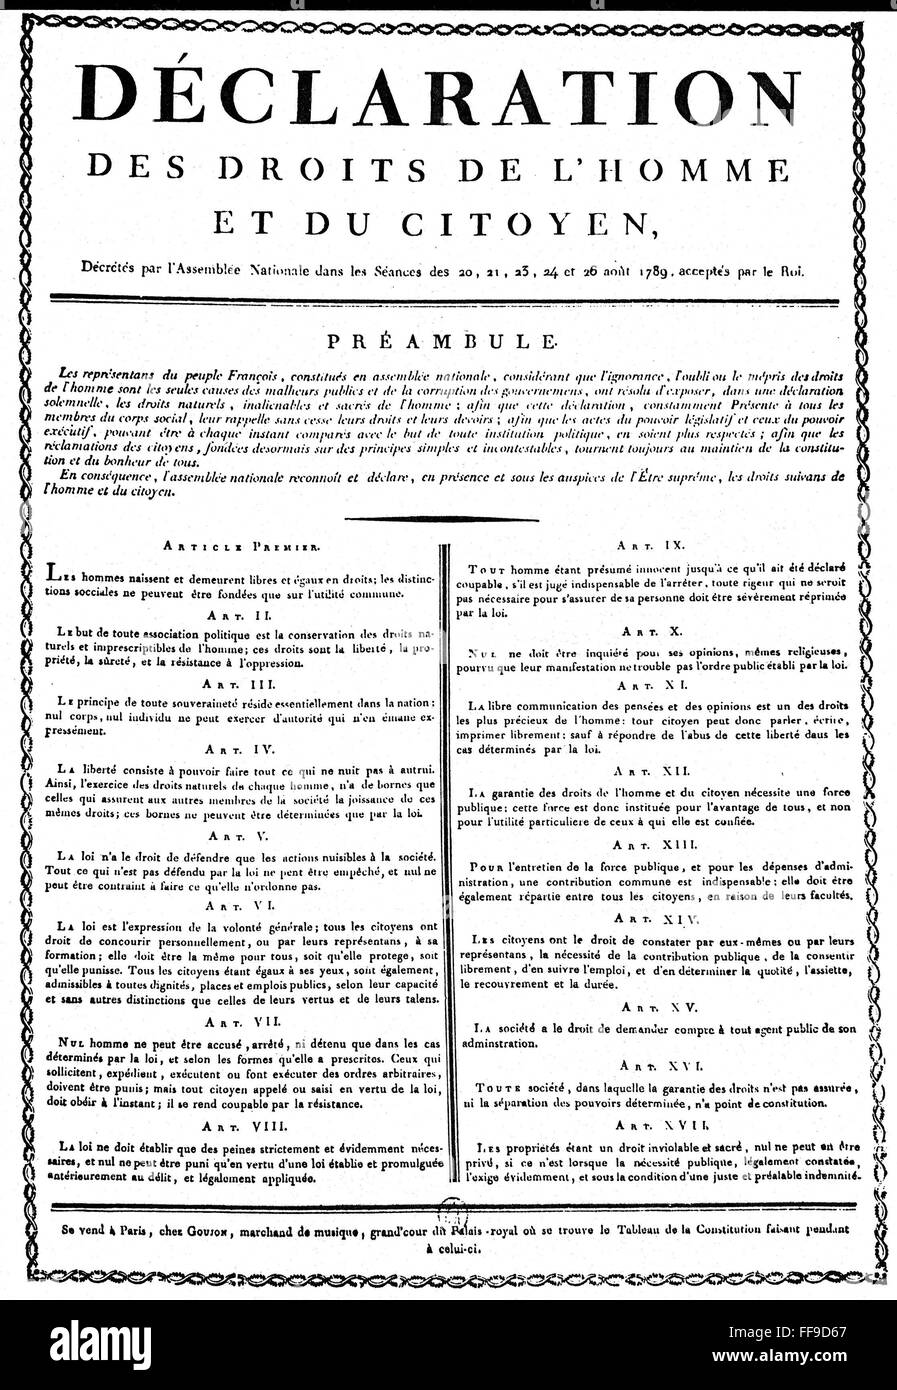 FRENCH REVOLUTION, 1789. /nThe Declaration of the Rights ...